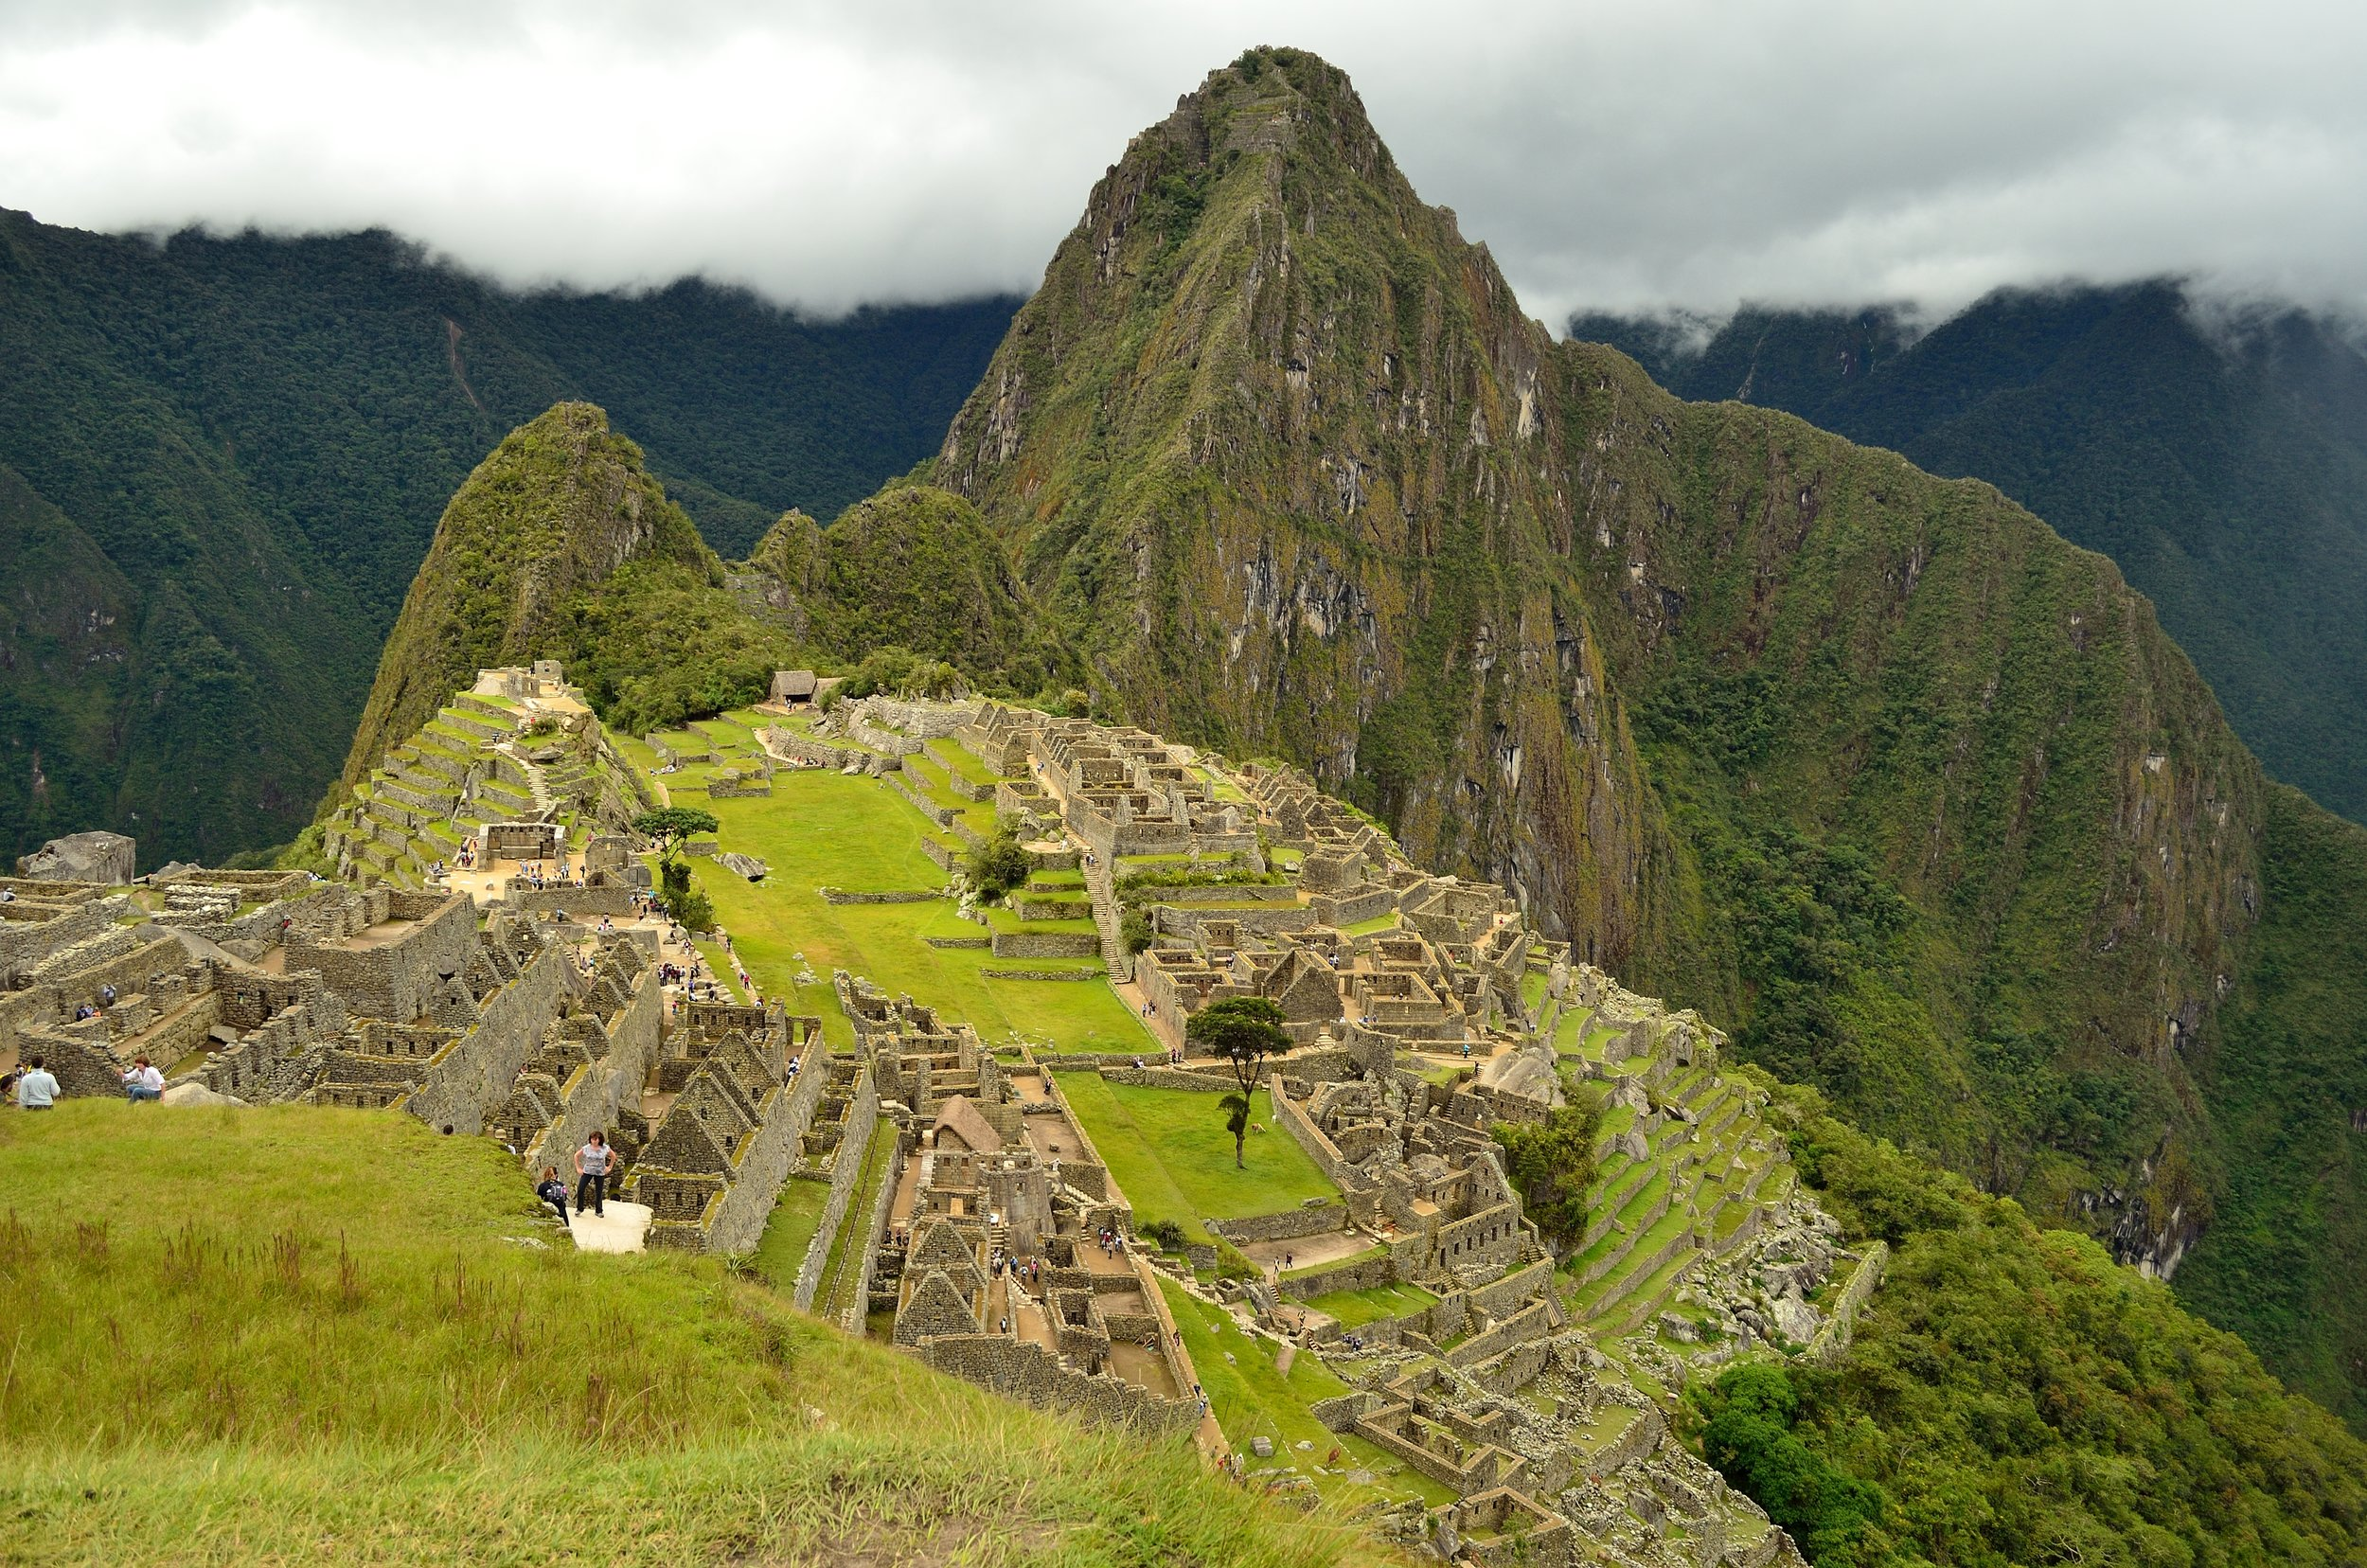 The most well-known perspective of Machu Picchu.